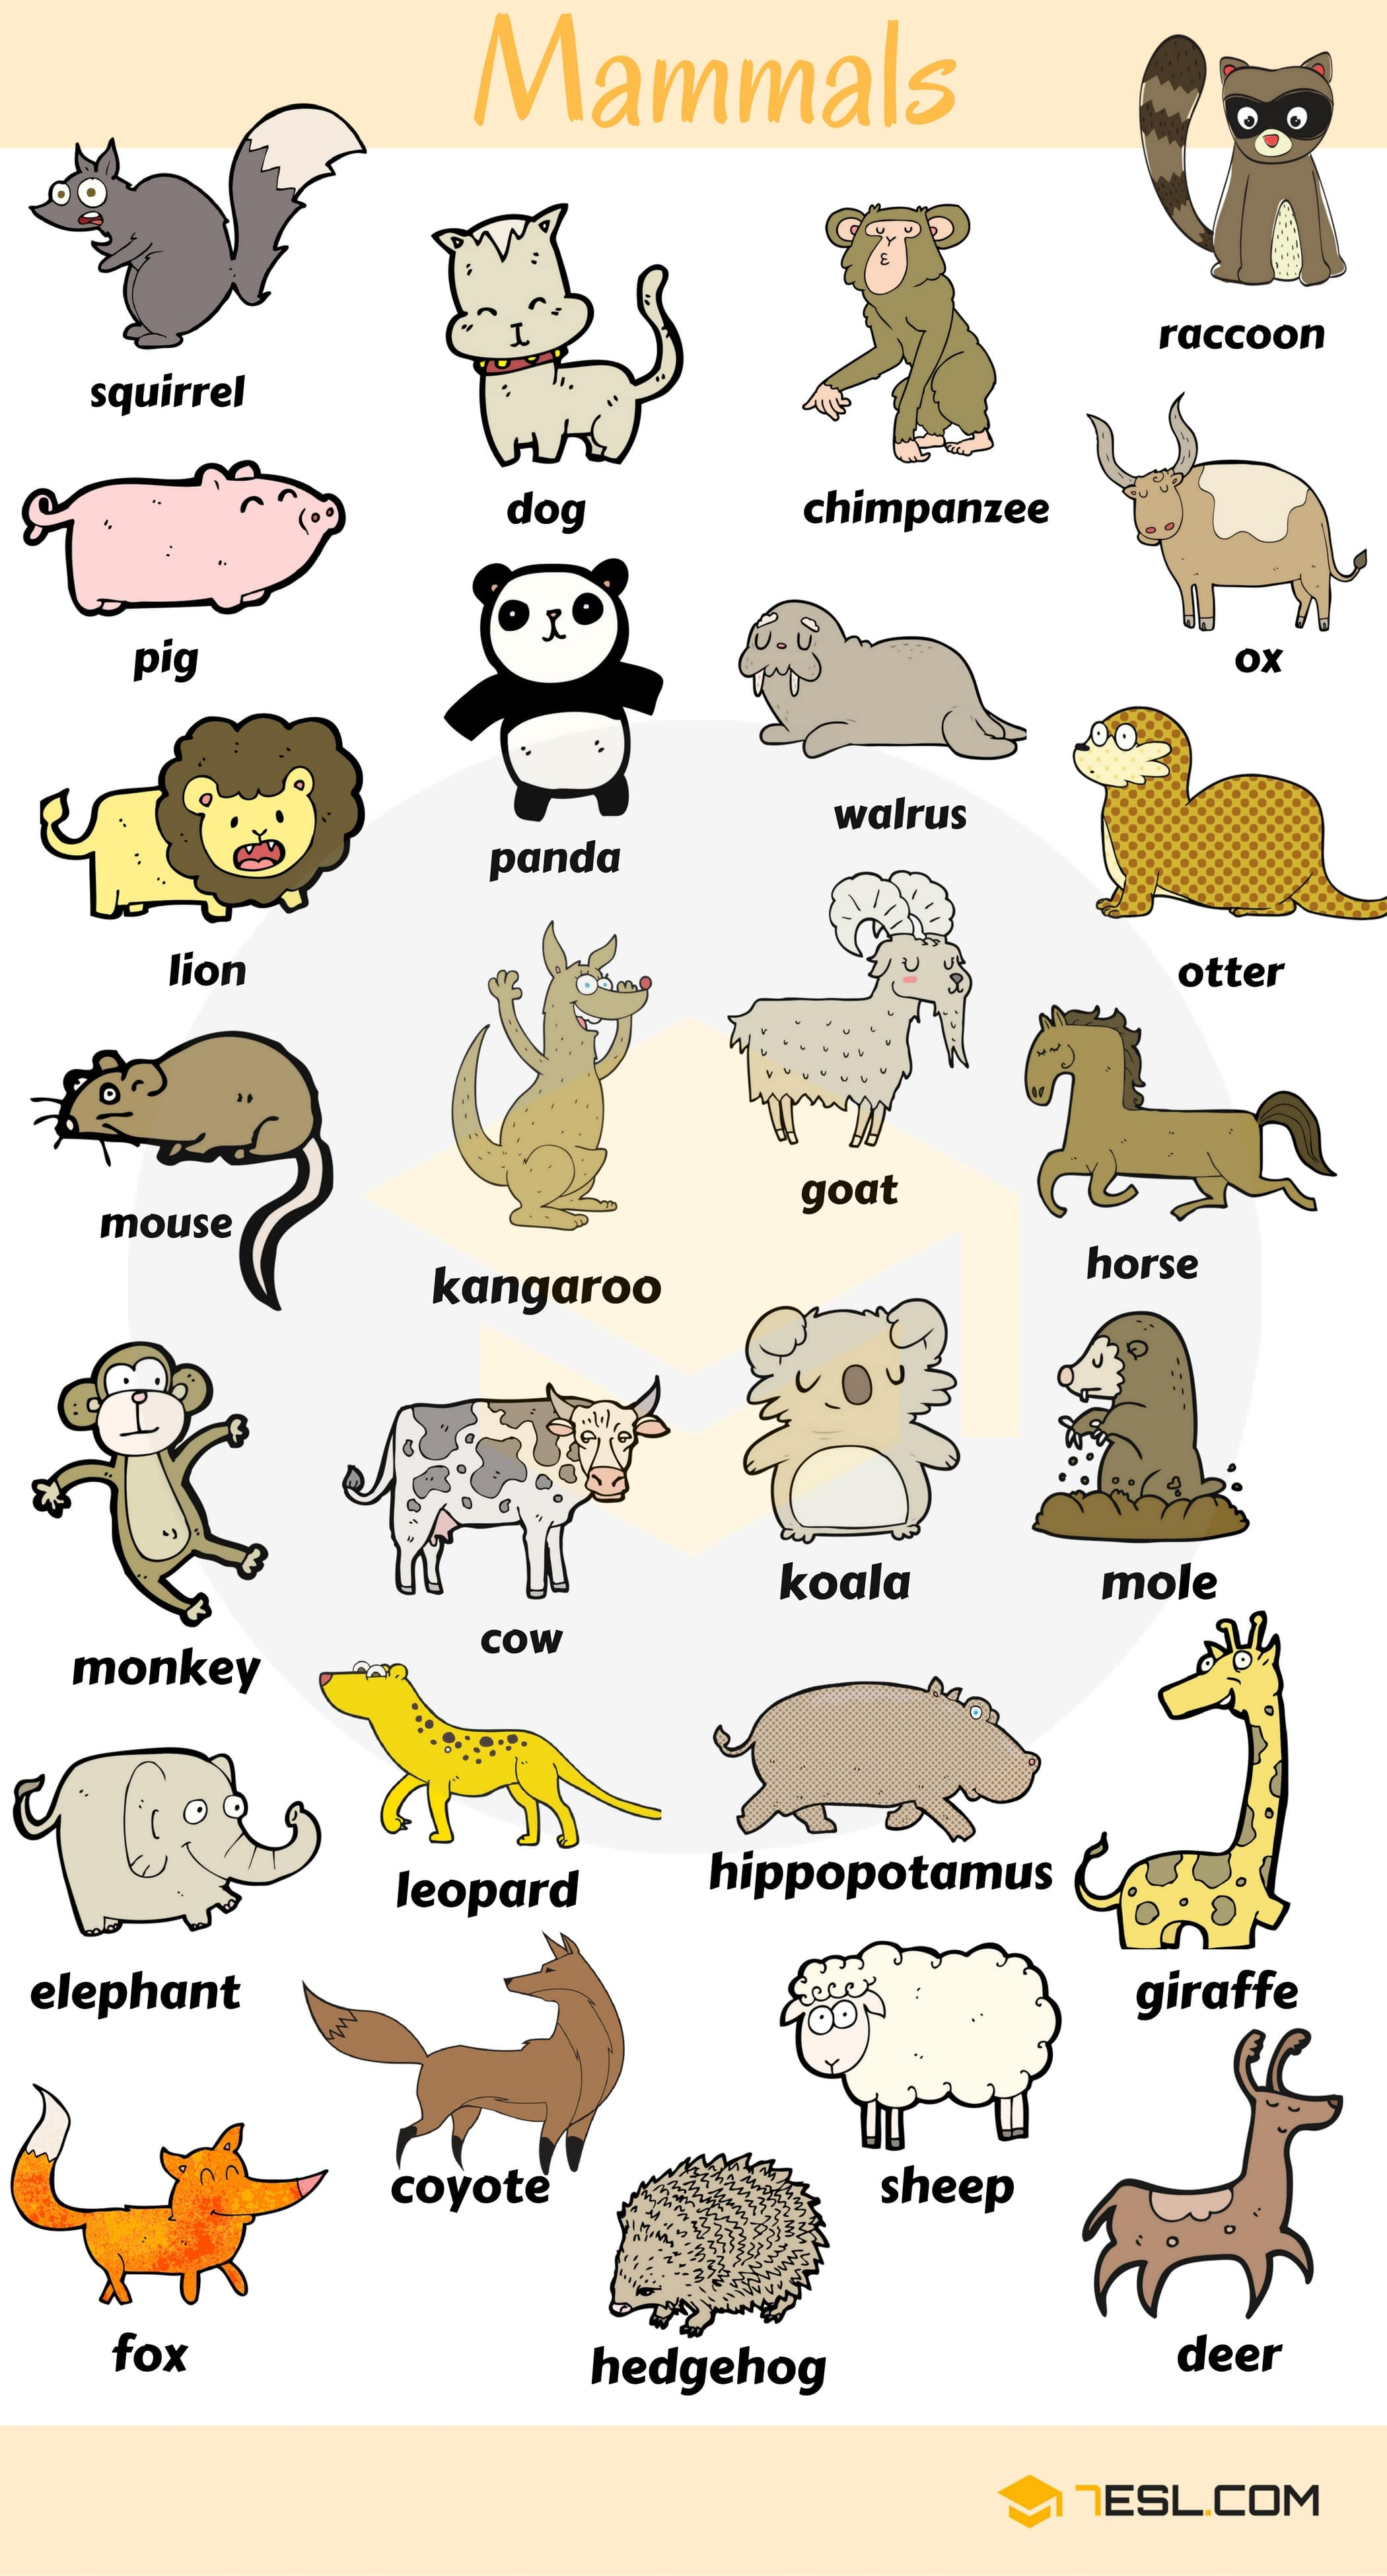 Learn English Vocabulary through Pictures: Mammals